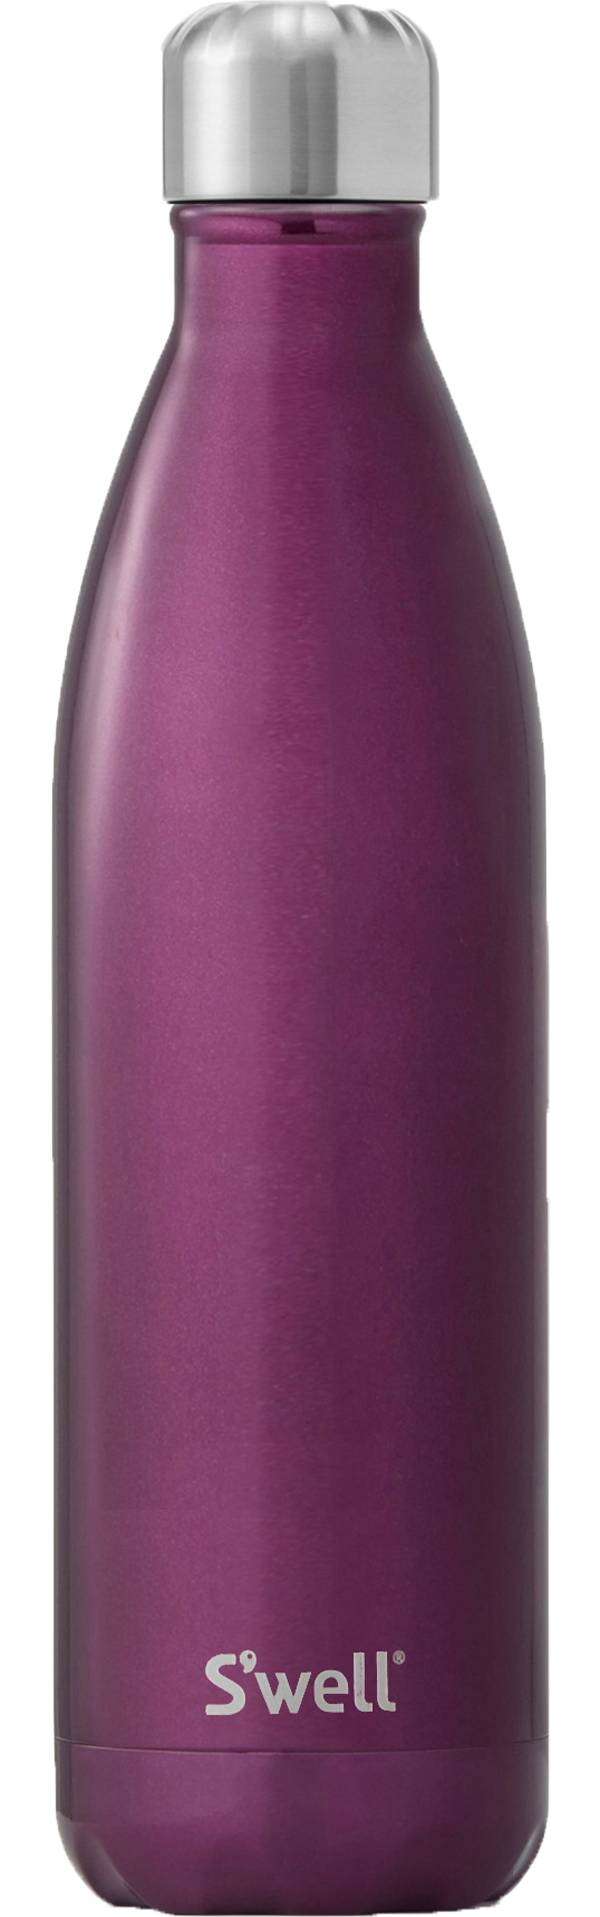 S'well 25 oz Water Bottle product image